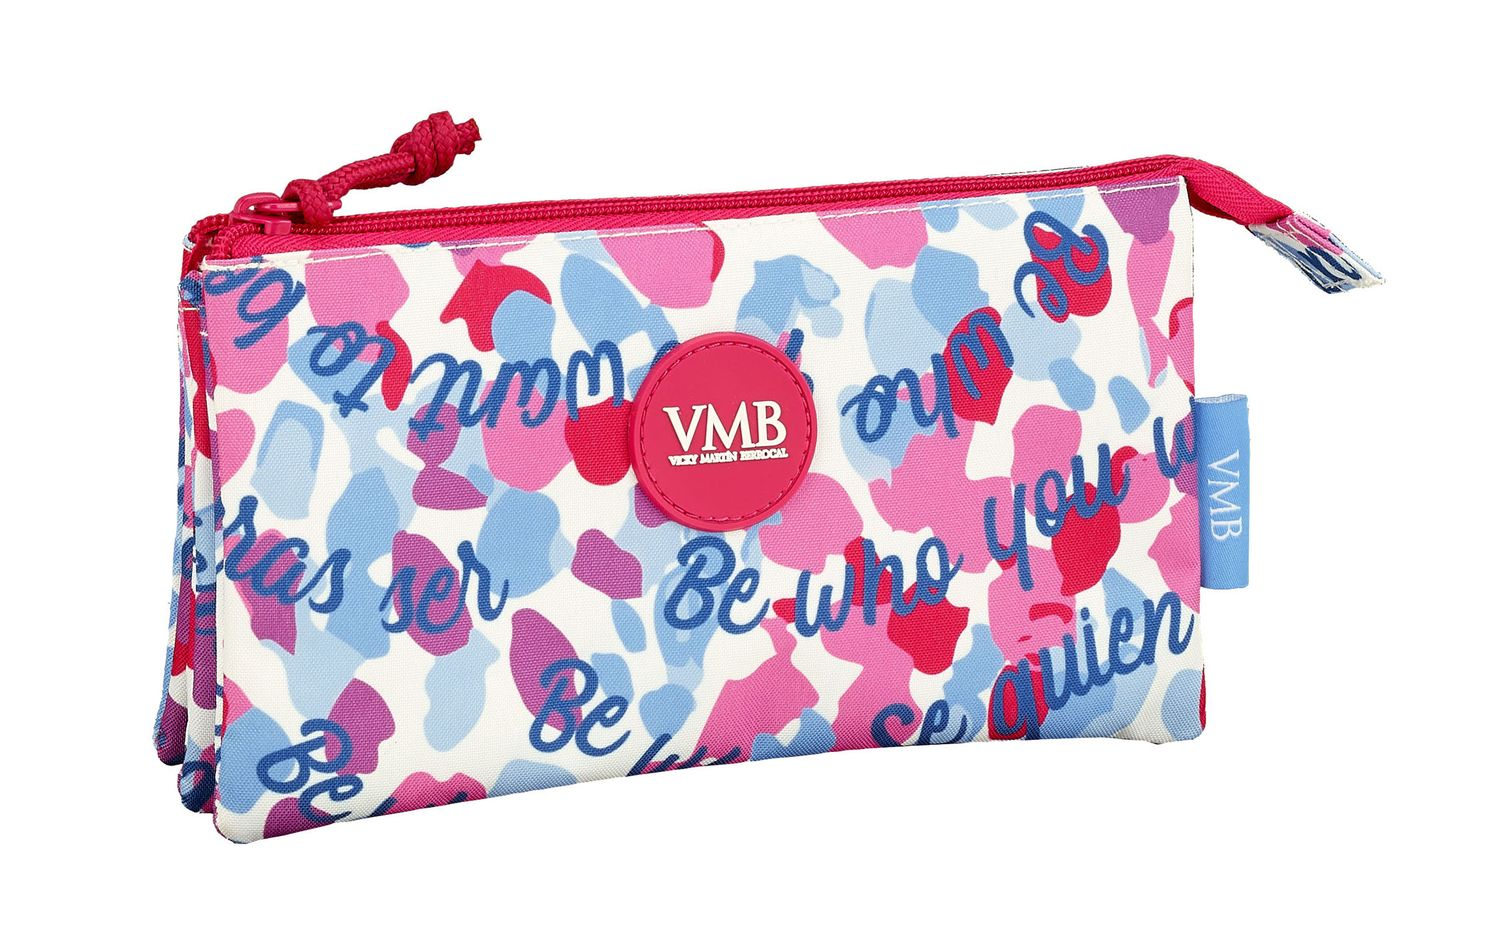 Triple Pencil Case Vicky Martin Berrocal – image 1